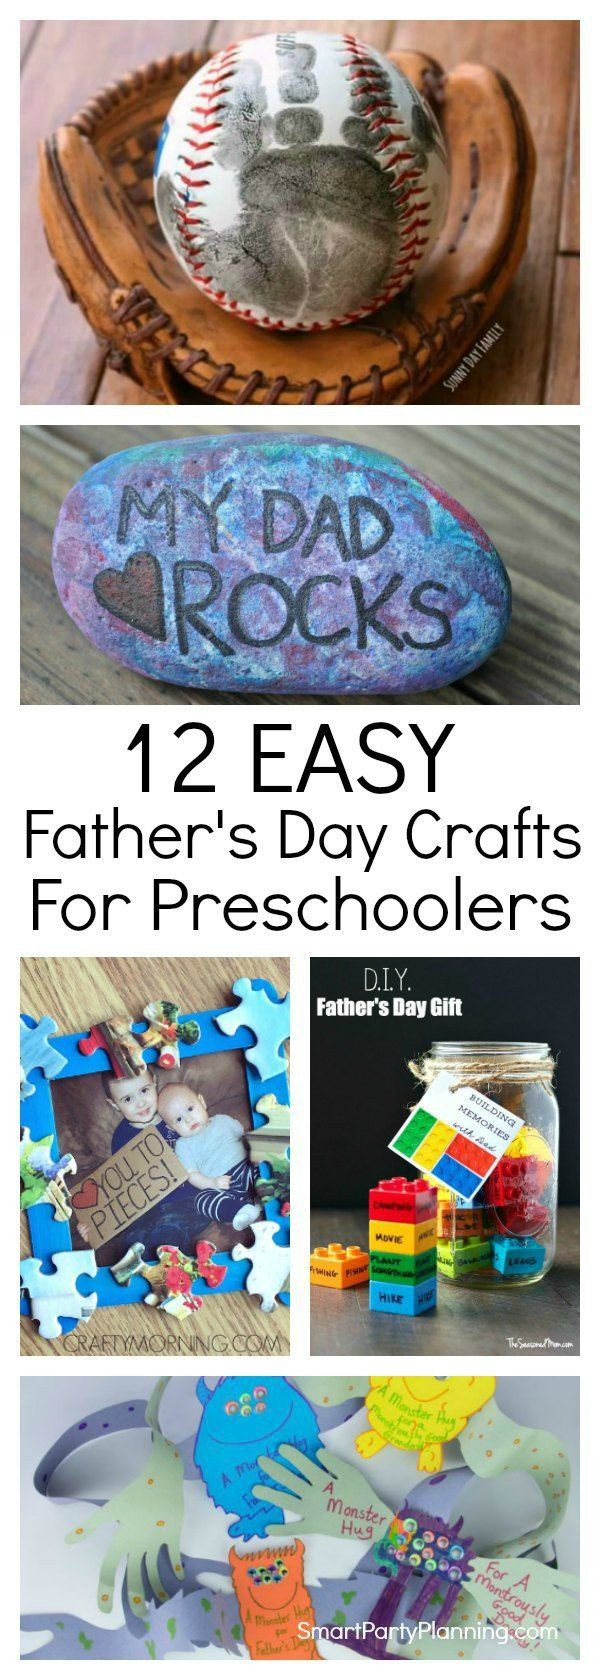 Father'S Day Gift Ideas For Preschoolers To Make  Best 25 Dad crafts ideas on Pinterest